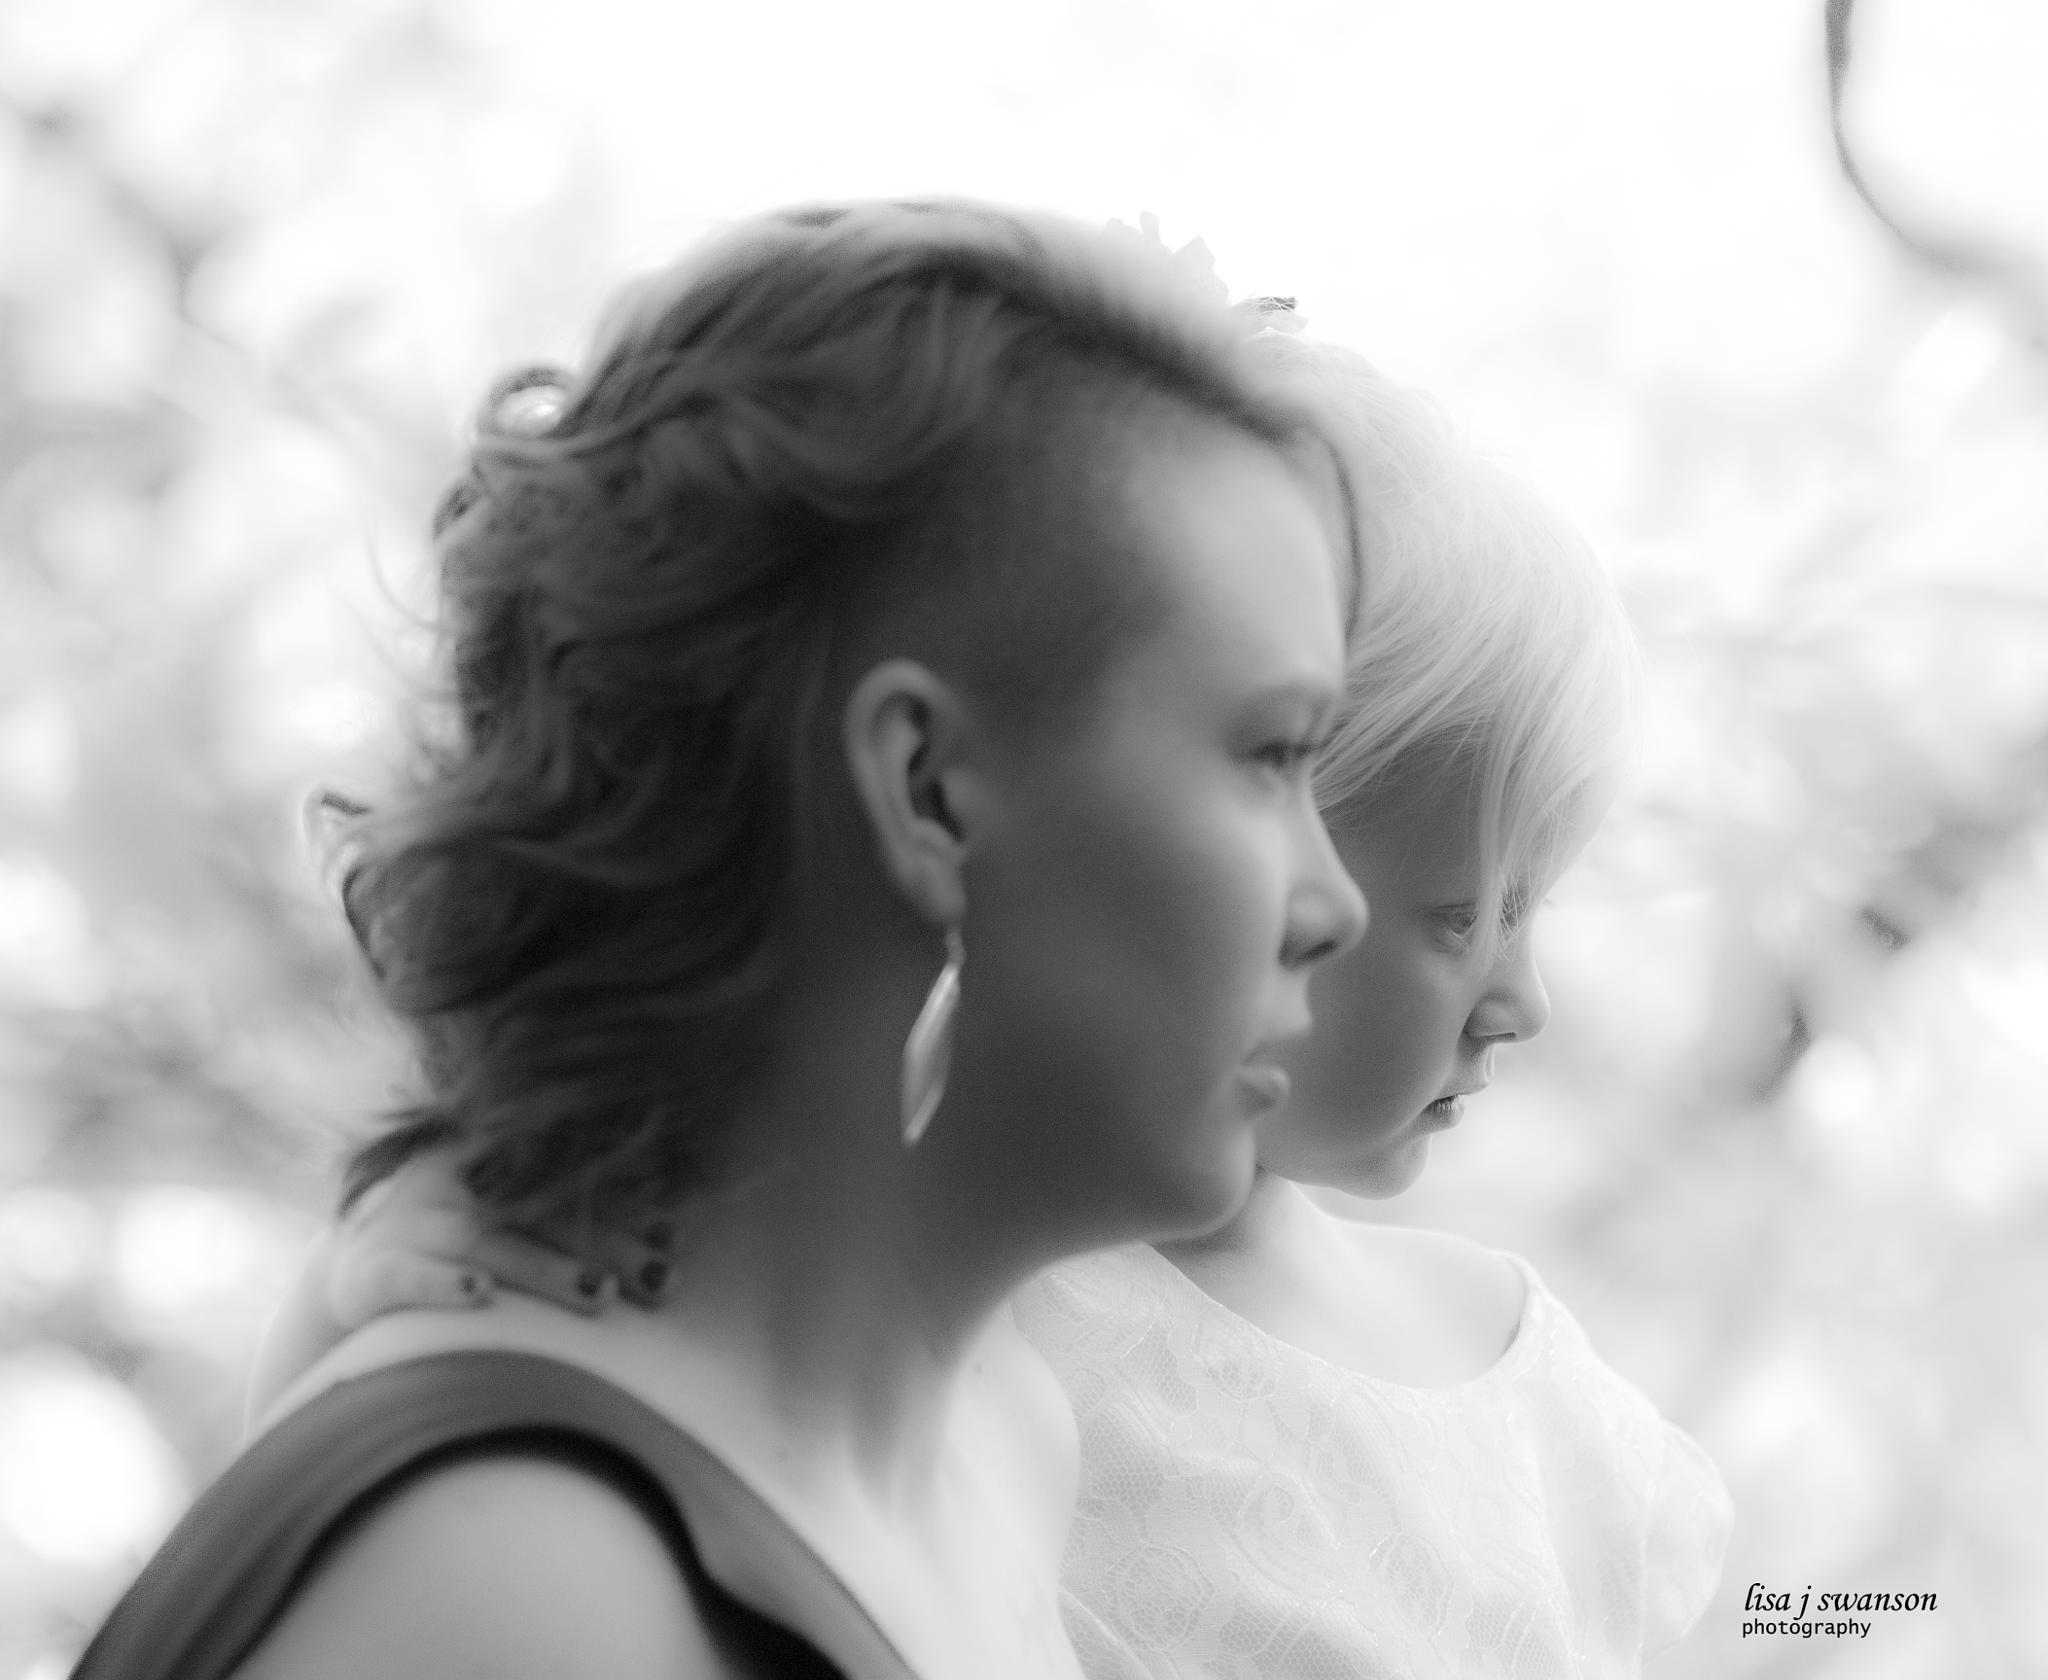 The love of a mother and daughter by lisa.meyersswanson